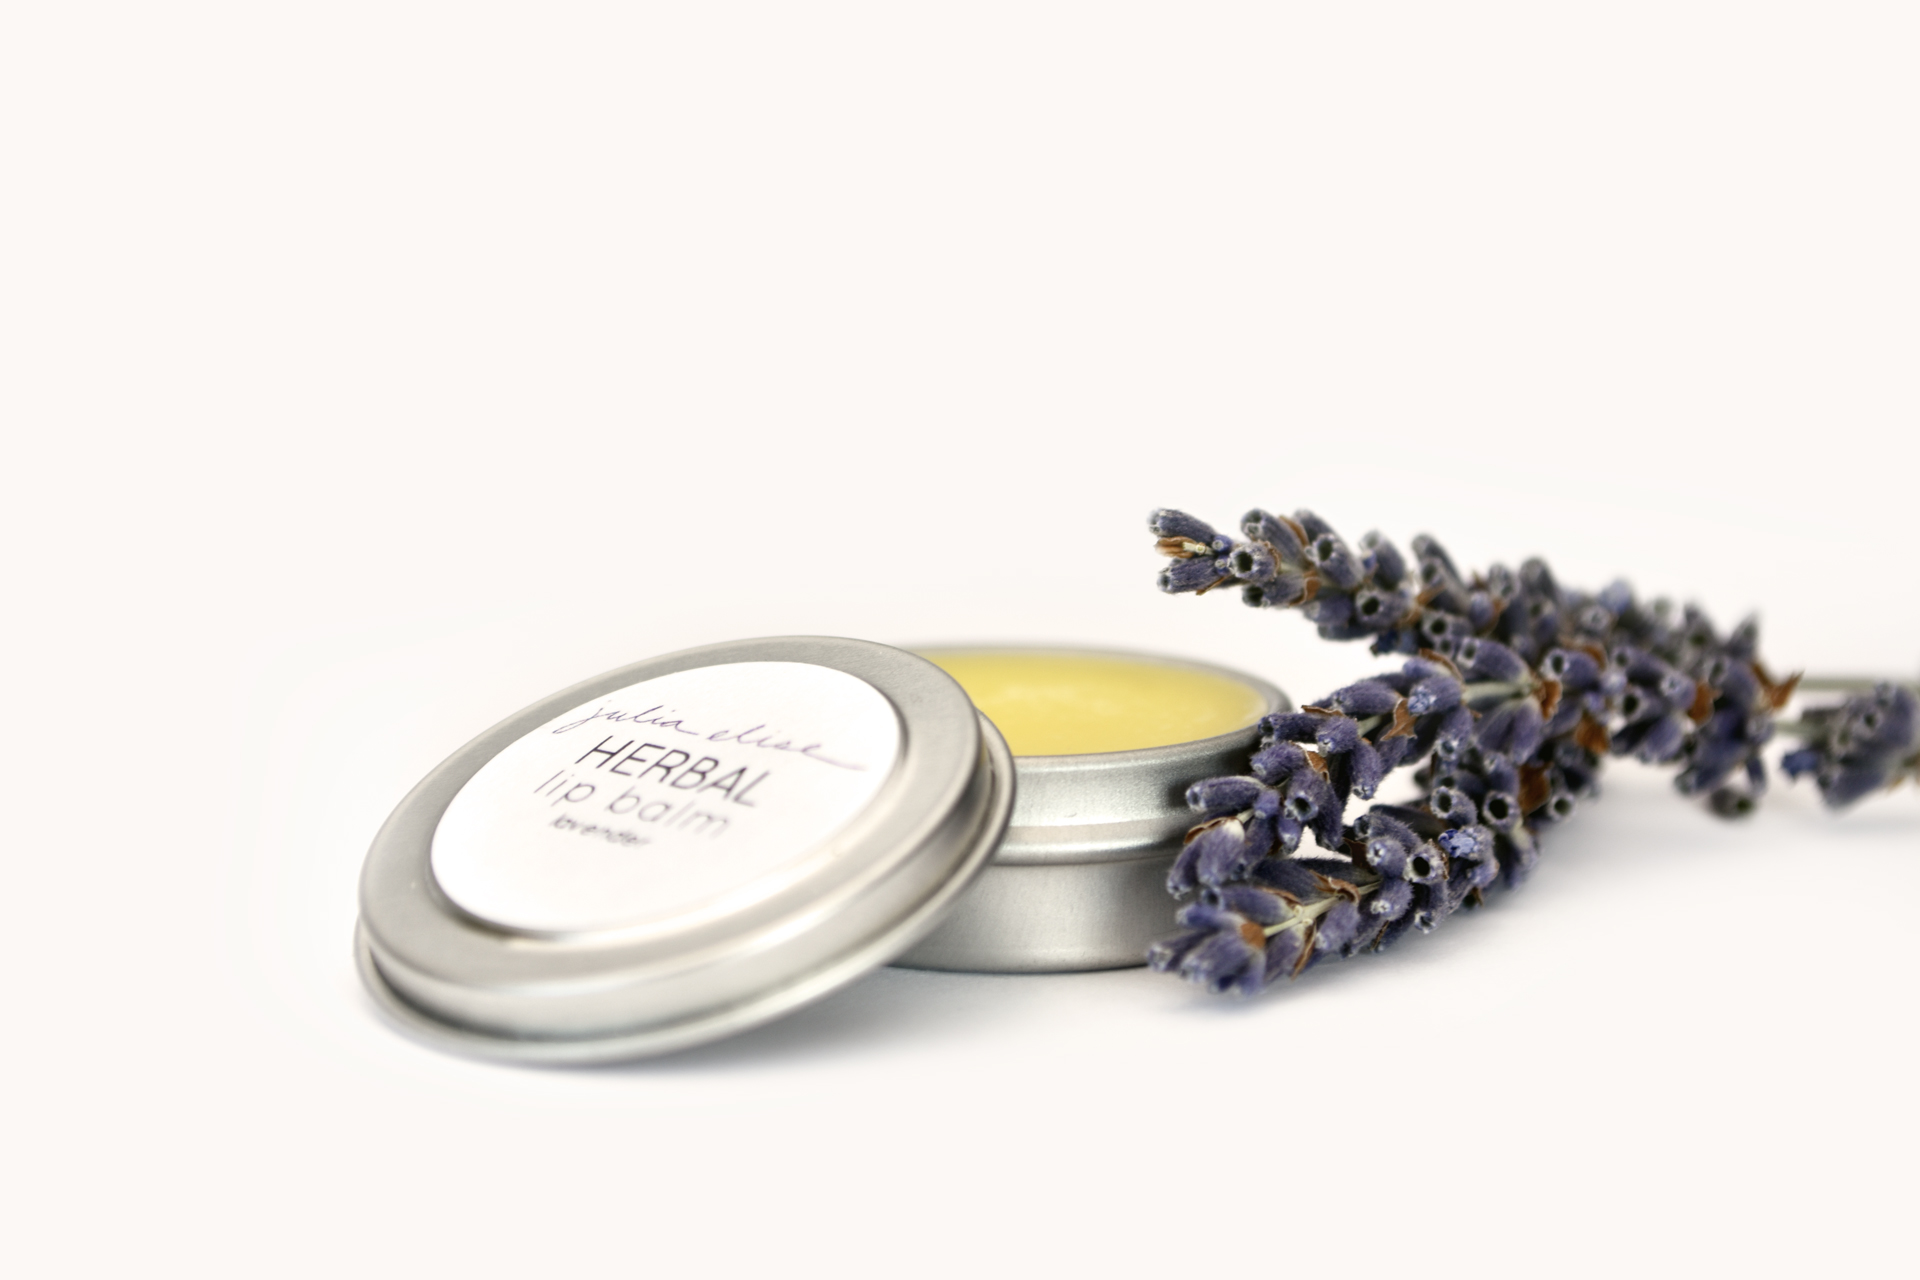 Herbal Lip Balm - LavenderSilky smooth lip balm will infuse lips with deep hydration and healing.Handcrafted in MN.Ingredients: calendula-infused olive oil, shea butter, cocoa butter, coconut oil, beeswax, vitamin e, and essential oil..25 ounce metal tin.